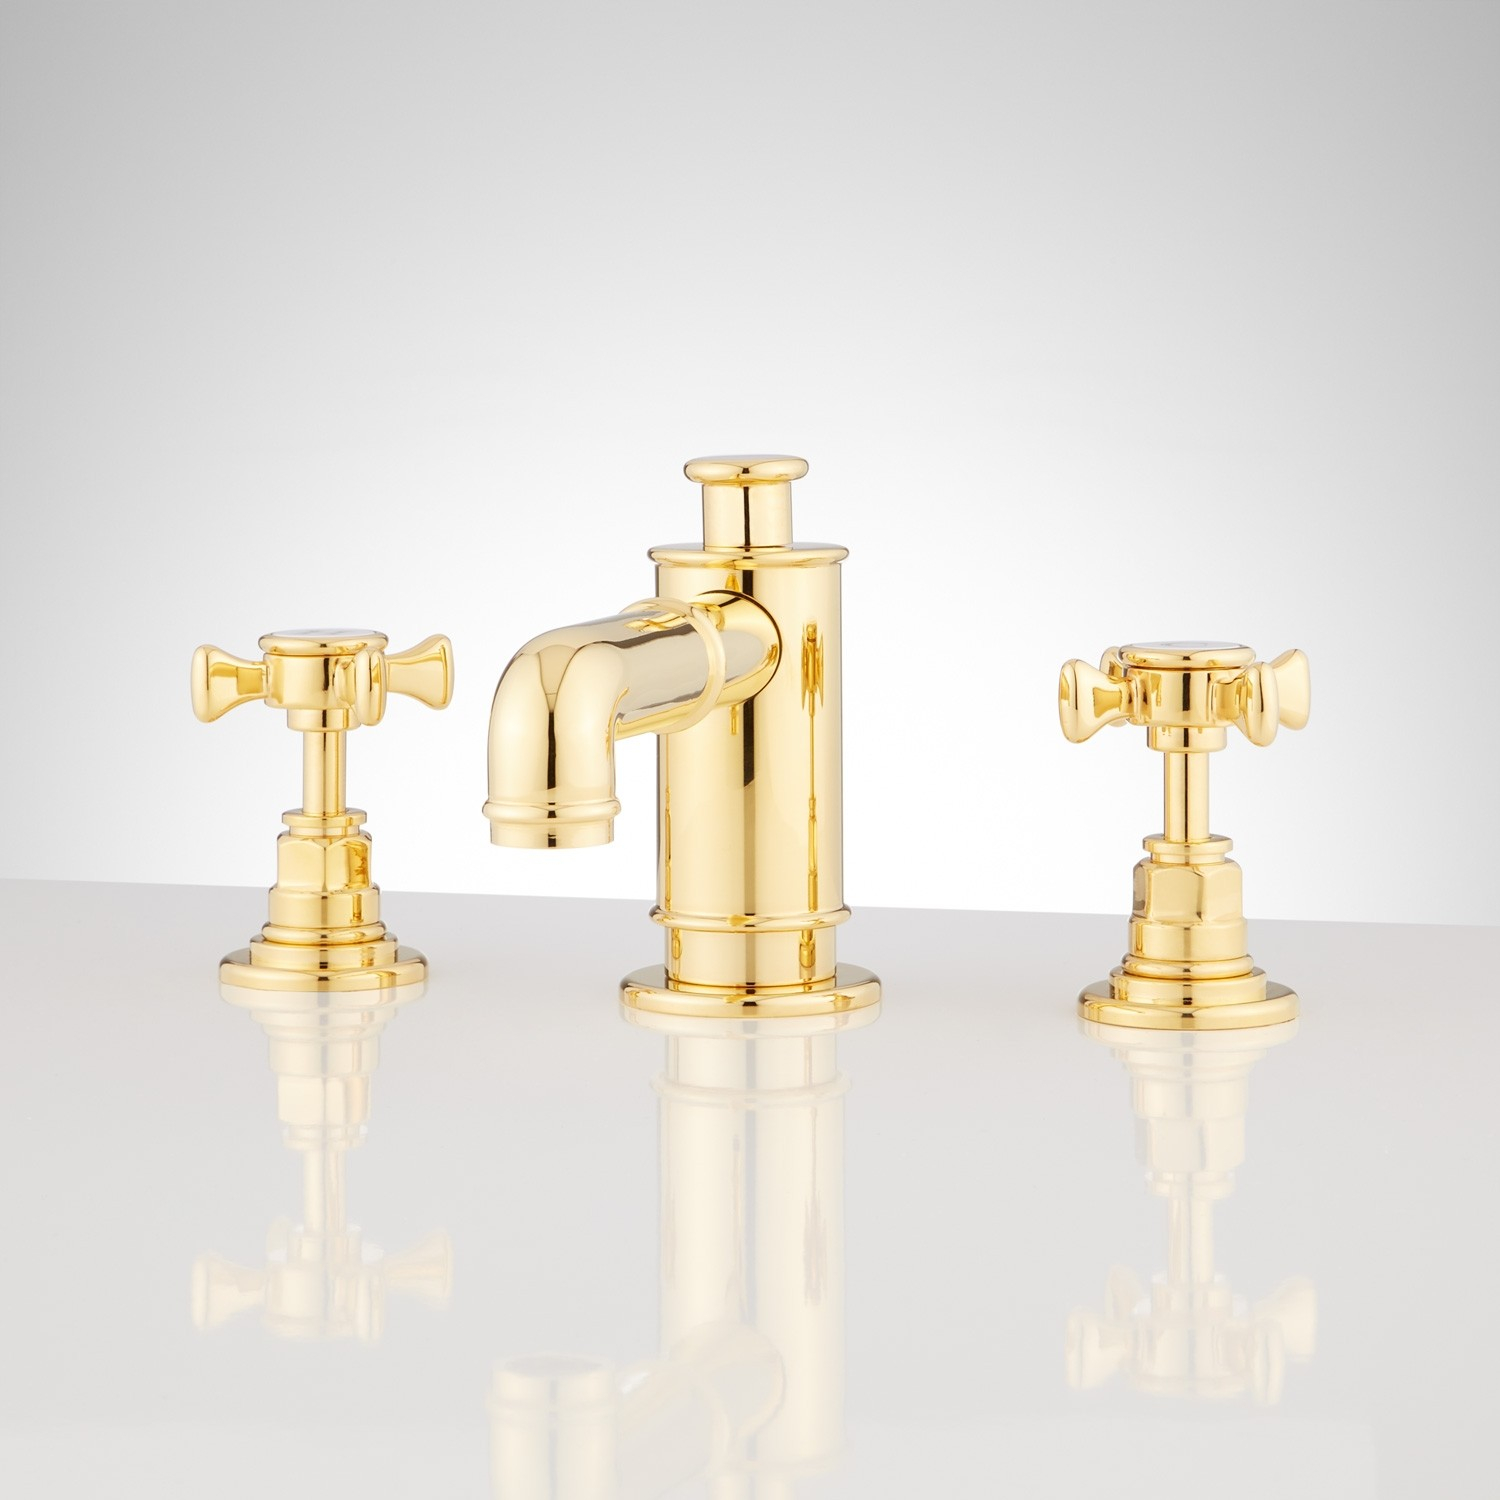 Inspirational Waterson Widespread Bathroom Faucet With Cross Handles - Bathroom in High Quality Gold Faucet Bathroom